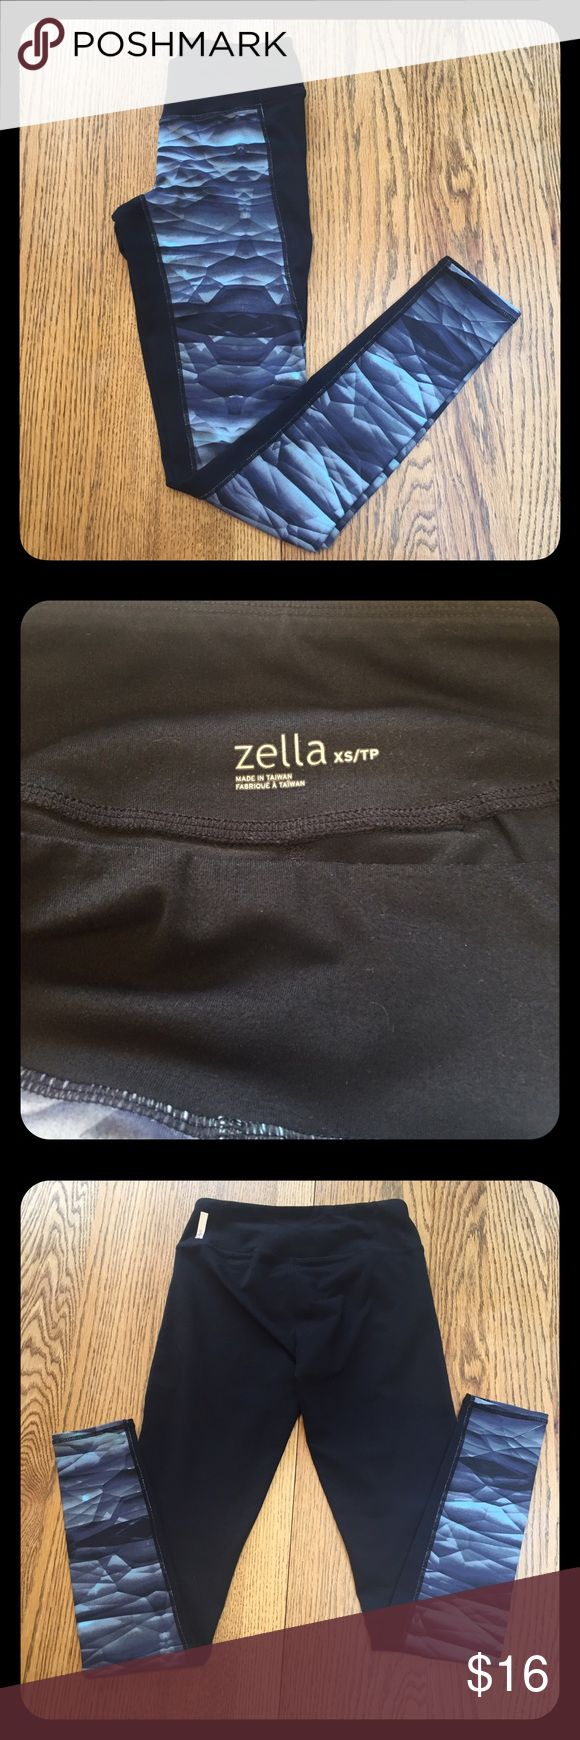 Leggings w/key pocket! Zella Live-In Leggings. Black with blue pattern. Size XS. Zella Live-In Leggings run large, I wear a size 27/size 4 and XS Zellas fit me perfectly. Good used condition! No holes/flaws. See photos for close ups! FYI: the designer of Zella for Nordstrom used to design for Lululemon, that's why they look so similar! 😊**Not Lululemon, just tagged for exposure**❤ please let me know if you have any questions! thanks for looking!😊 lululemon athletica Pants Leggings